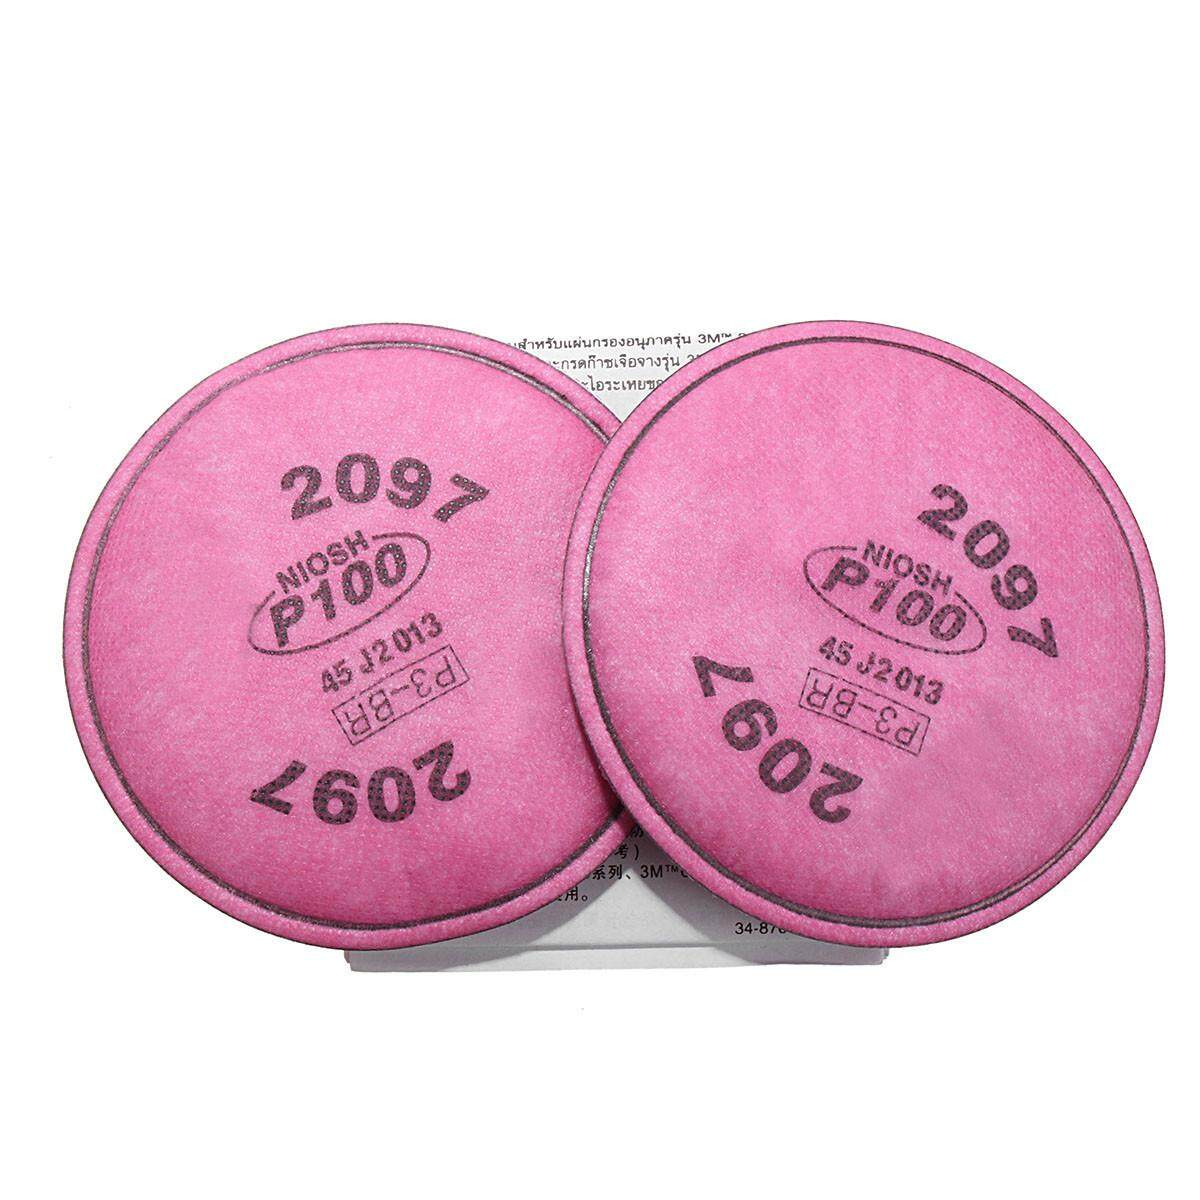 20cs P100 Cotton Particulate Efficient Filter For 6000/7000 Respirator